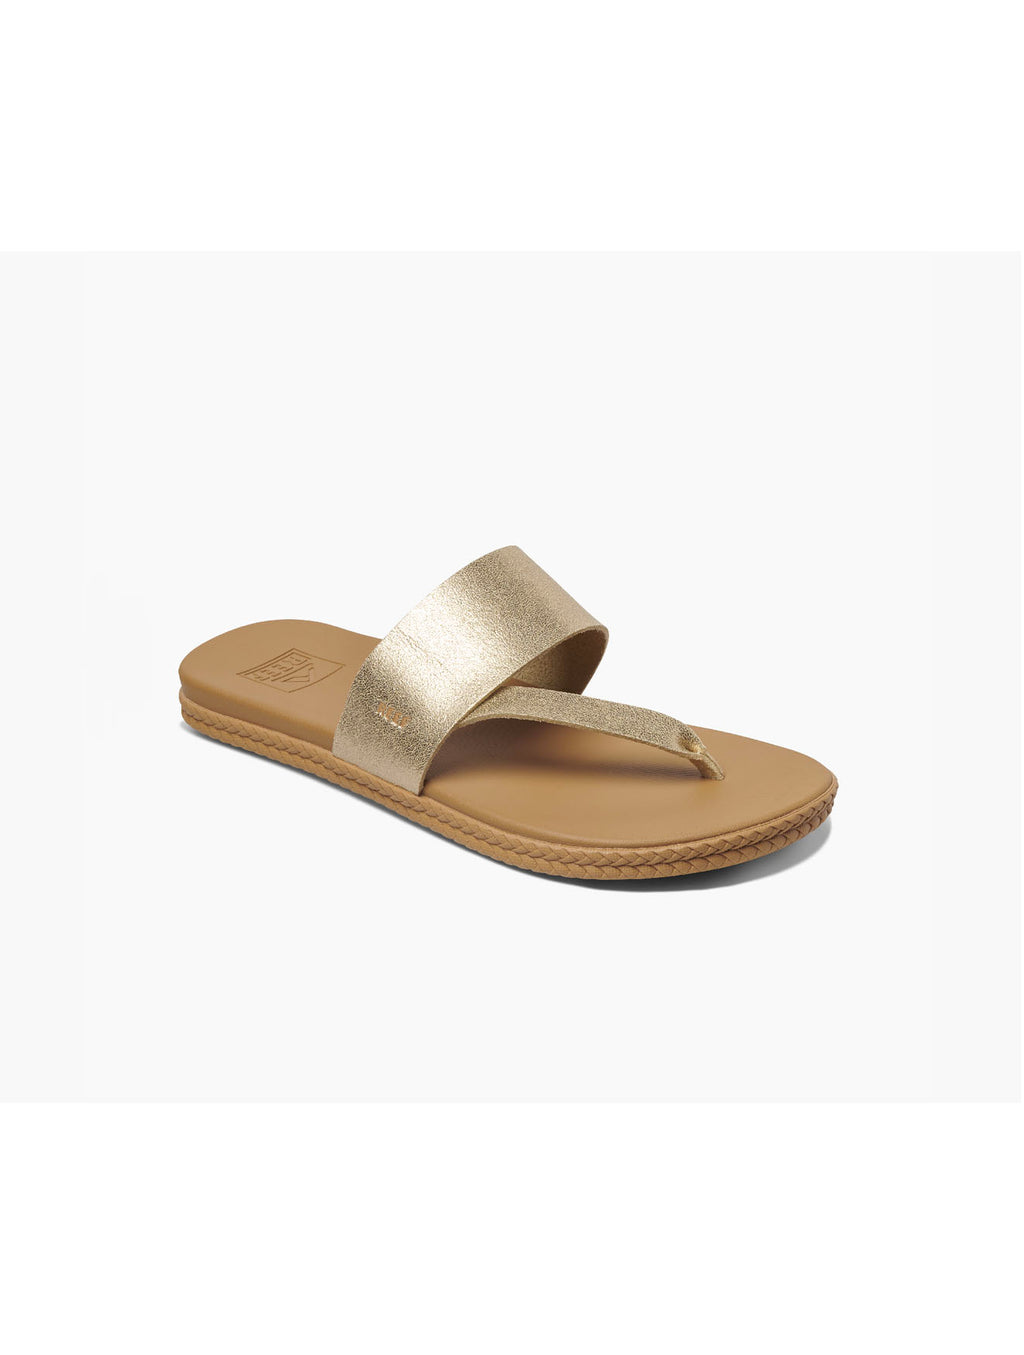 Reef Cushion Bounce Sole Sandal in Champagne